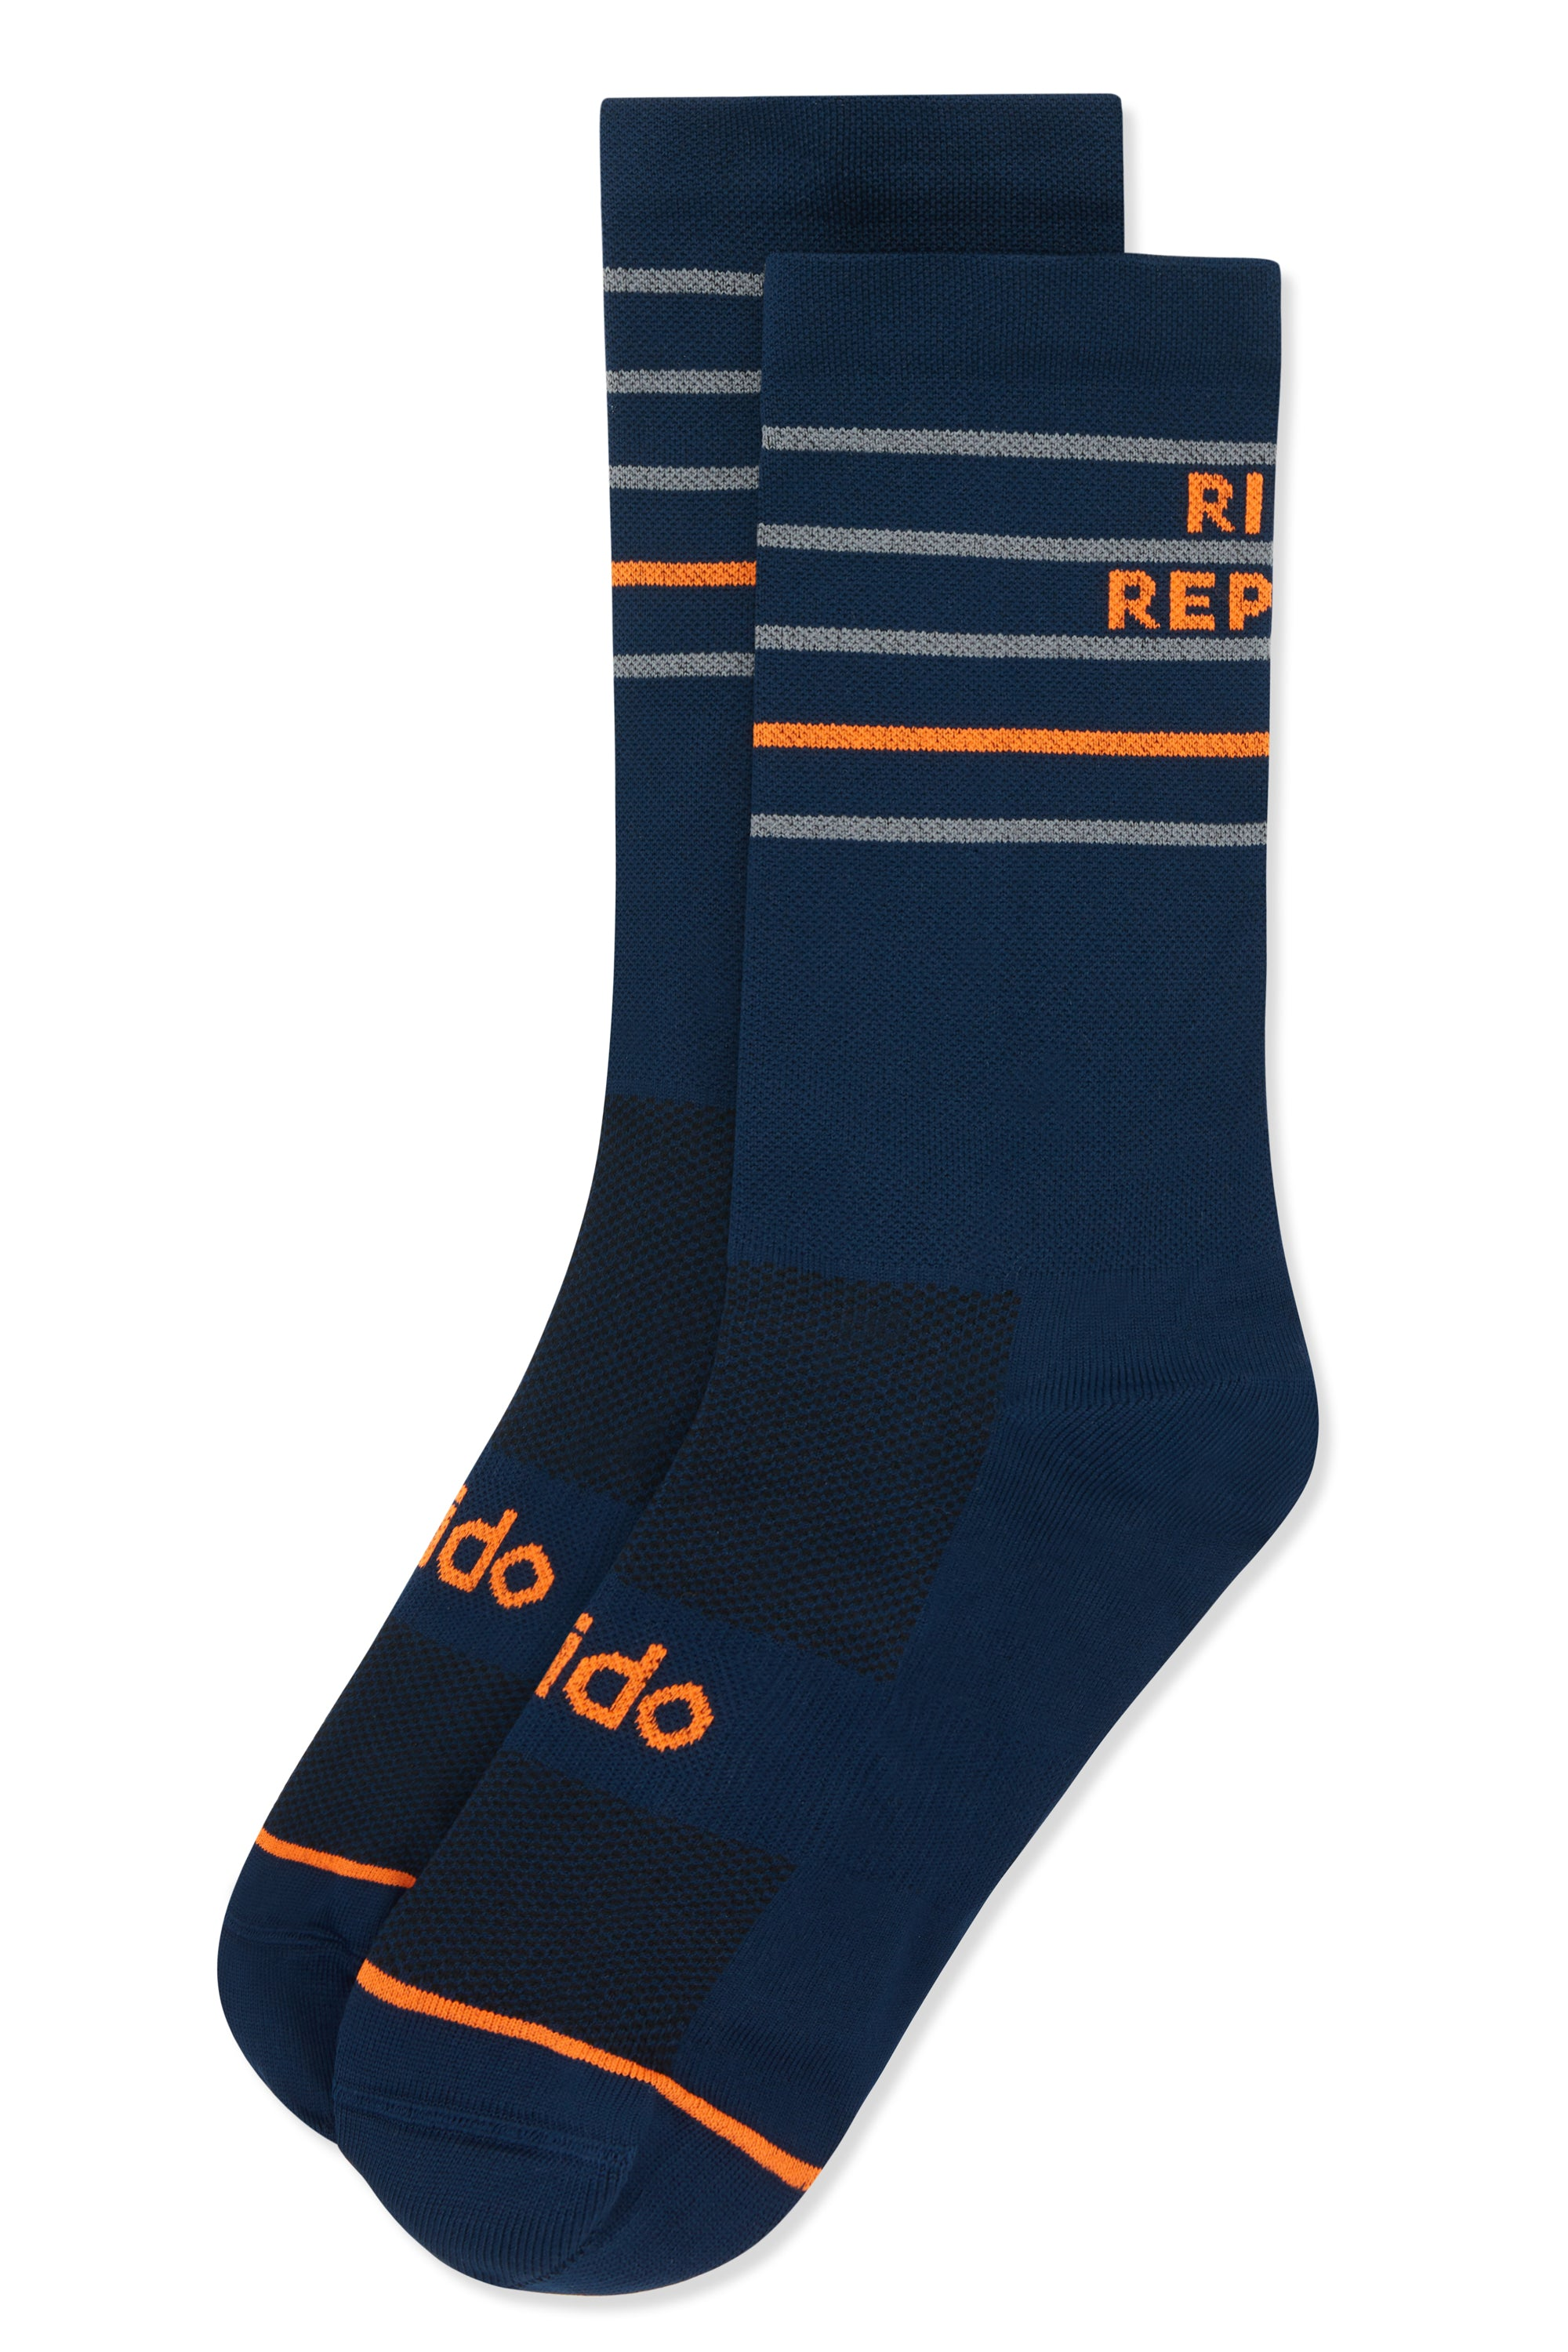 Navy funky cycling socks